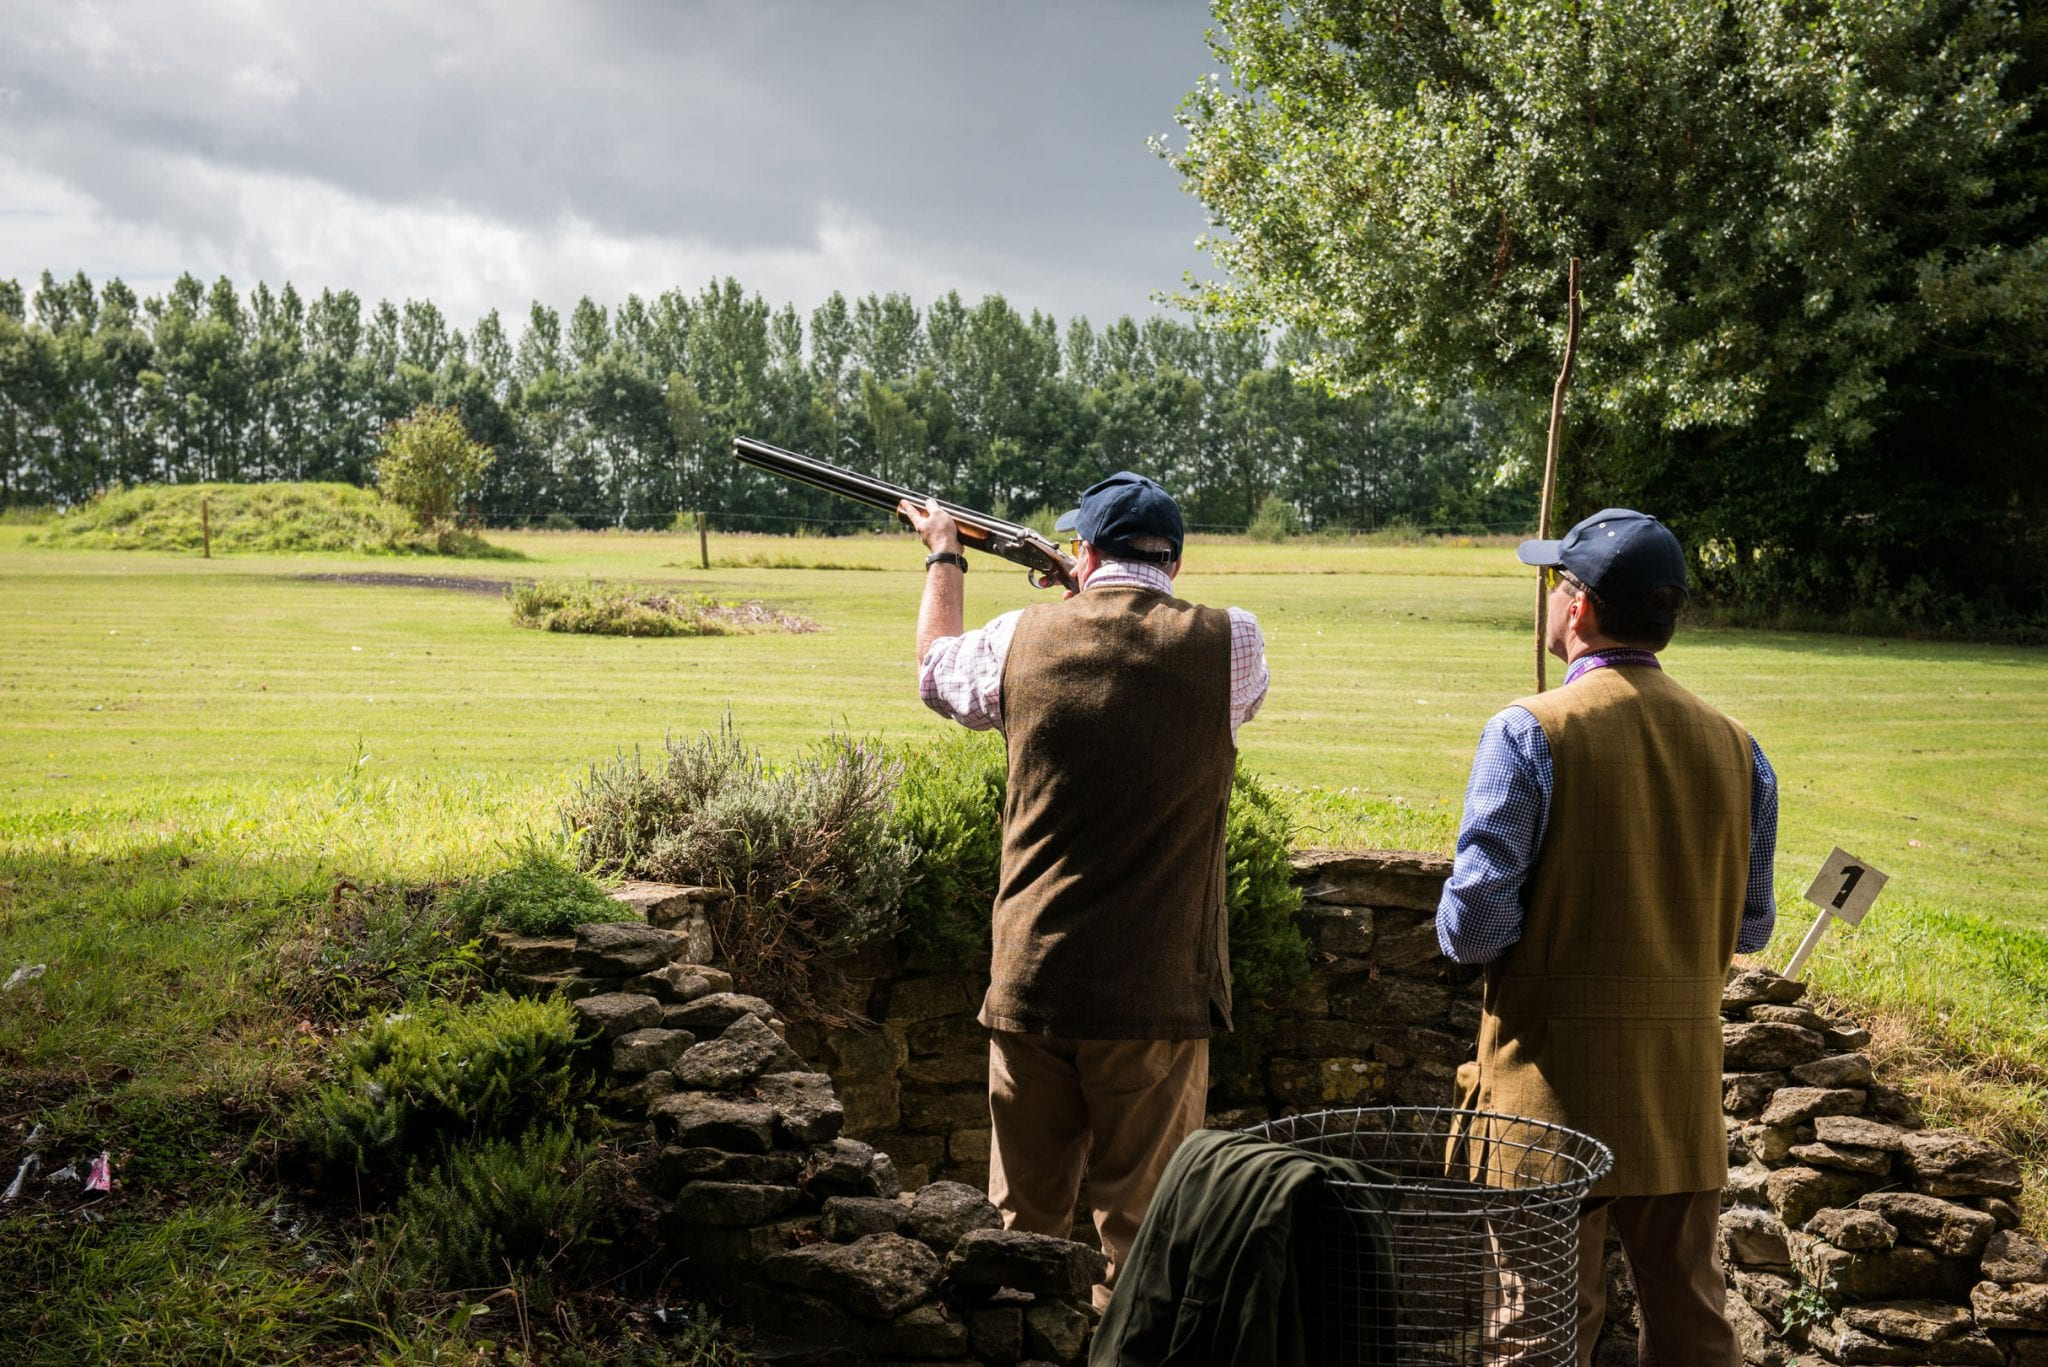 Clay shooting practice at Lady's Wood Shooting School